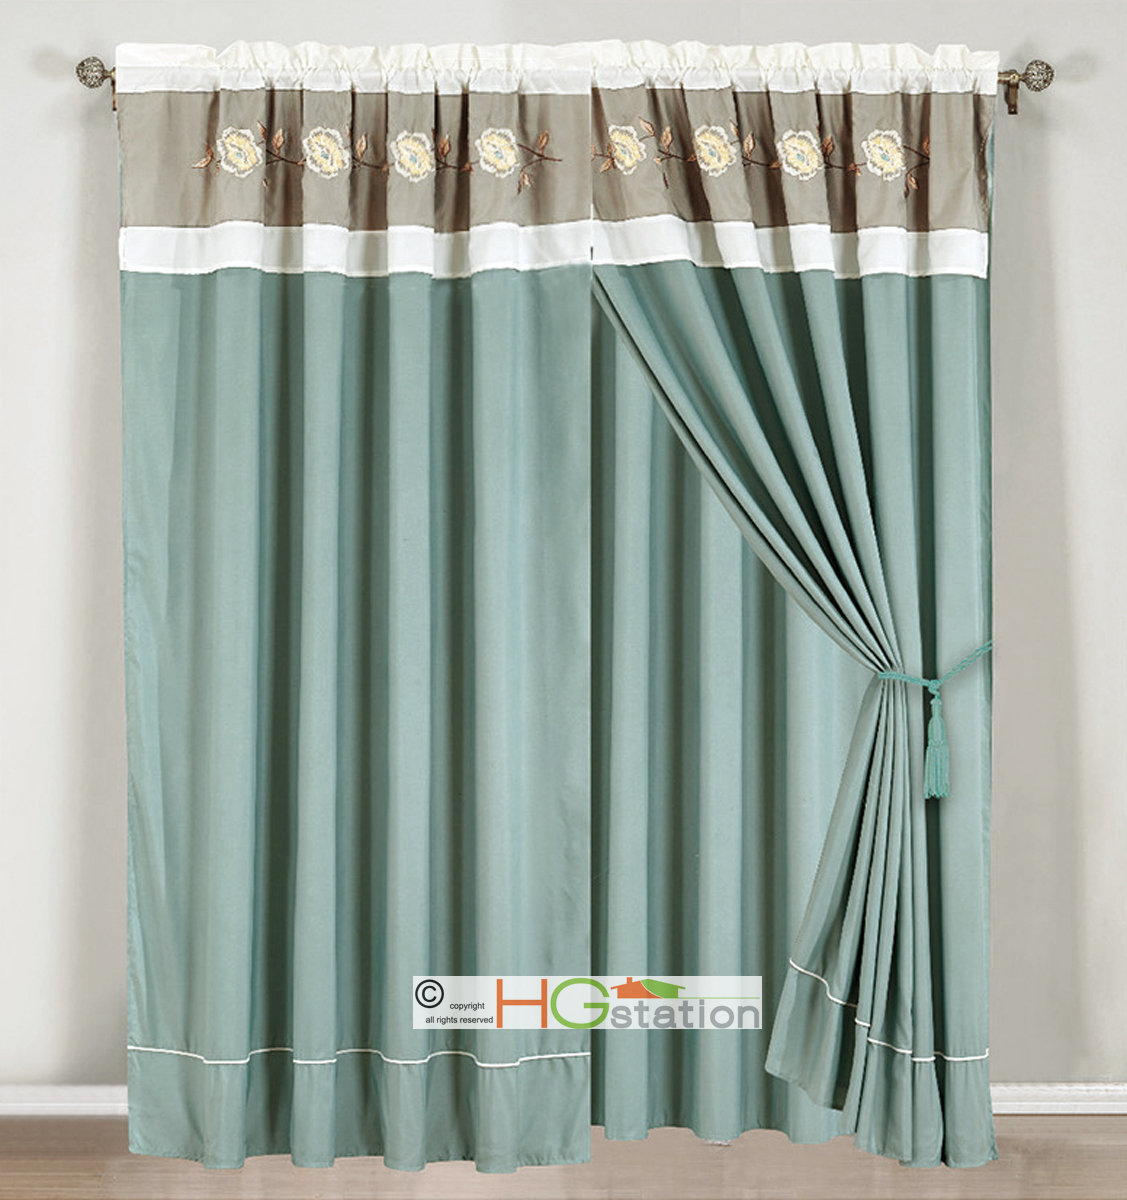 4 pc embroidery pleated floral curtain set sea green blue silver white valance ebay. Black Bedroom Furniture Sets. Home Design Ideas